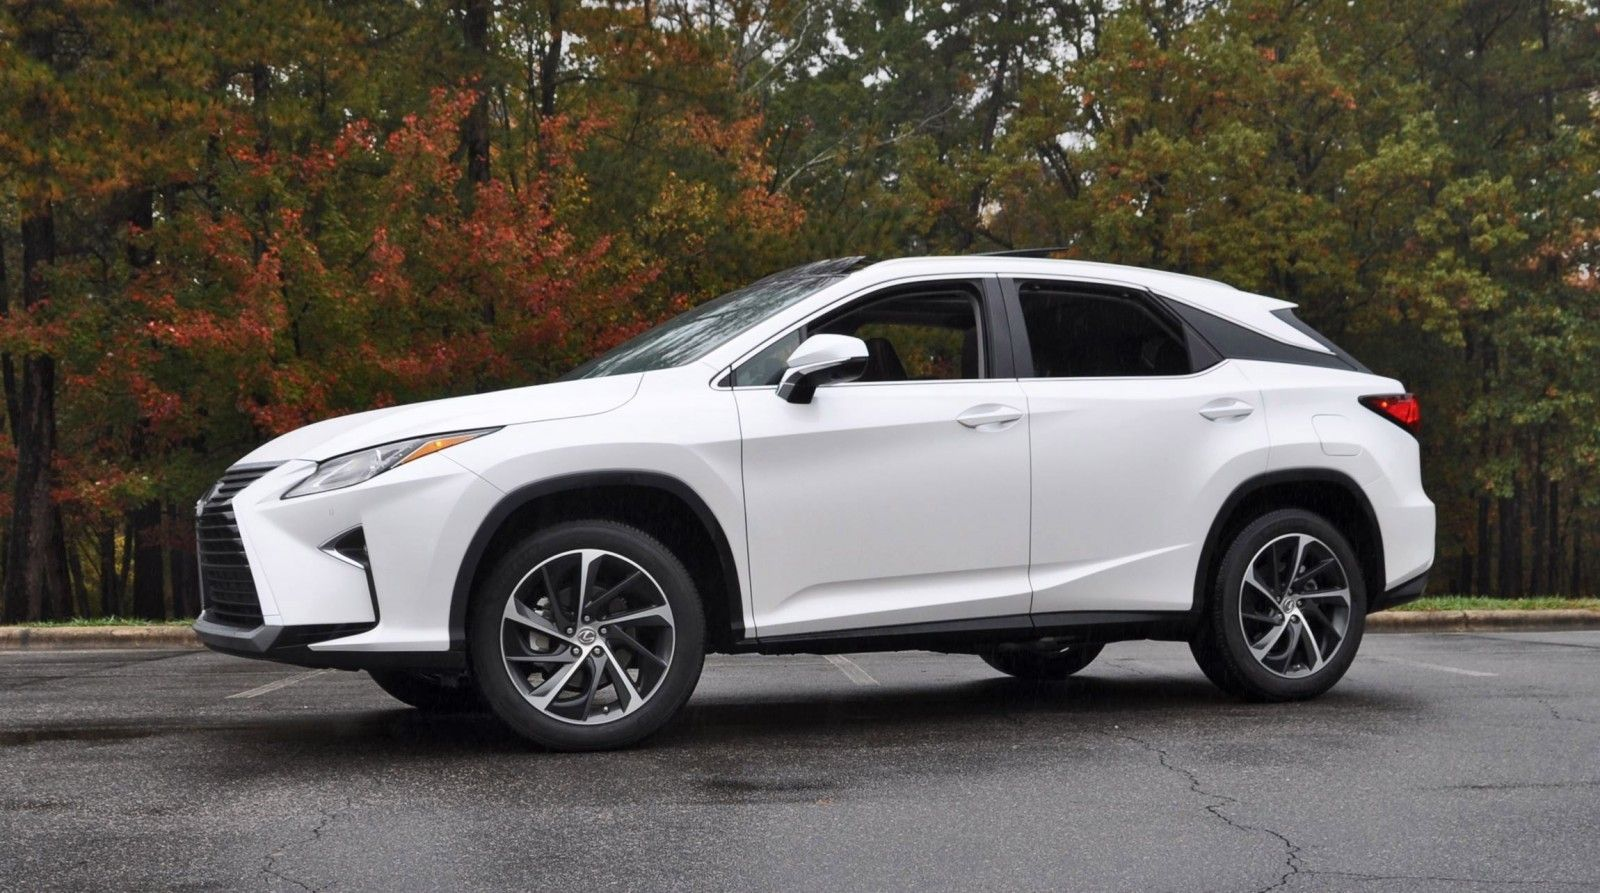 2016 Lexus RX350 Colors Gallery Inside and Out + 80 New